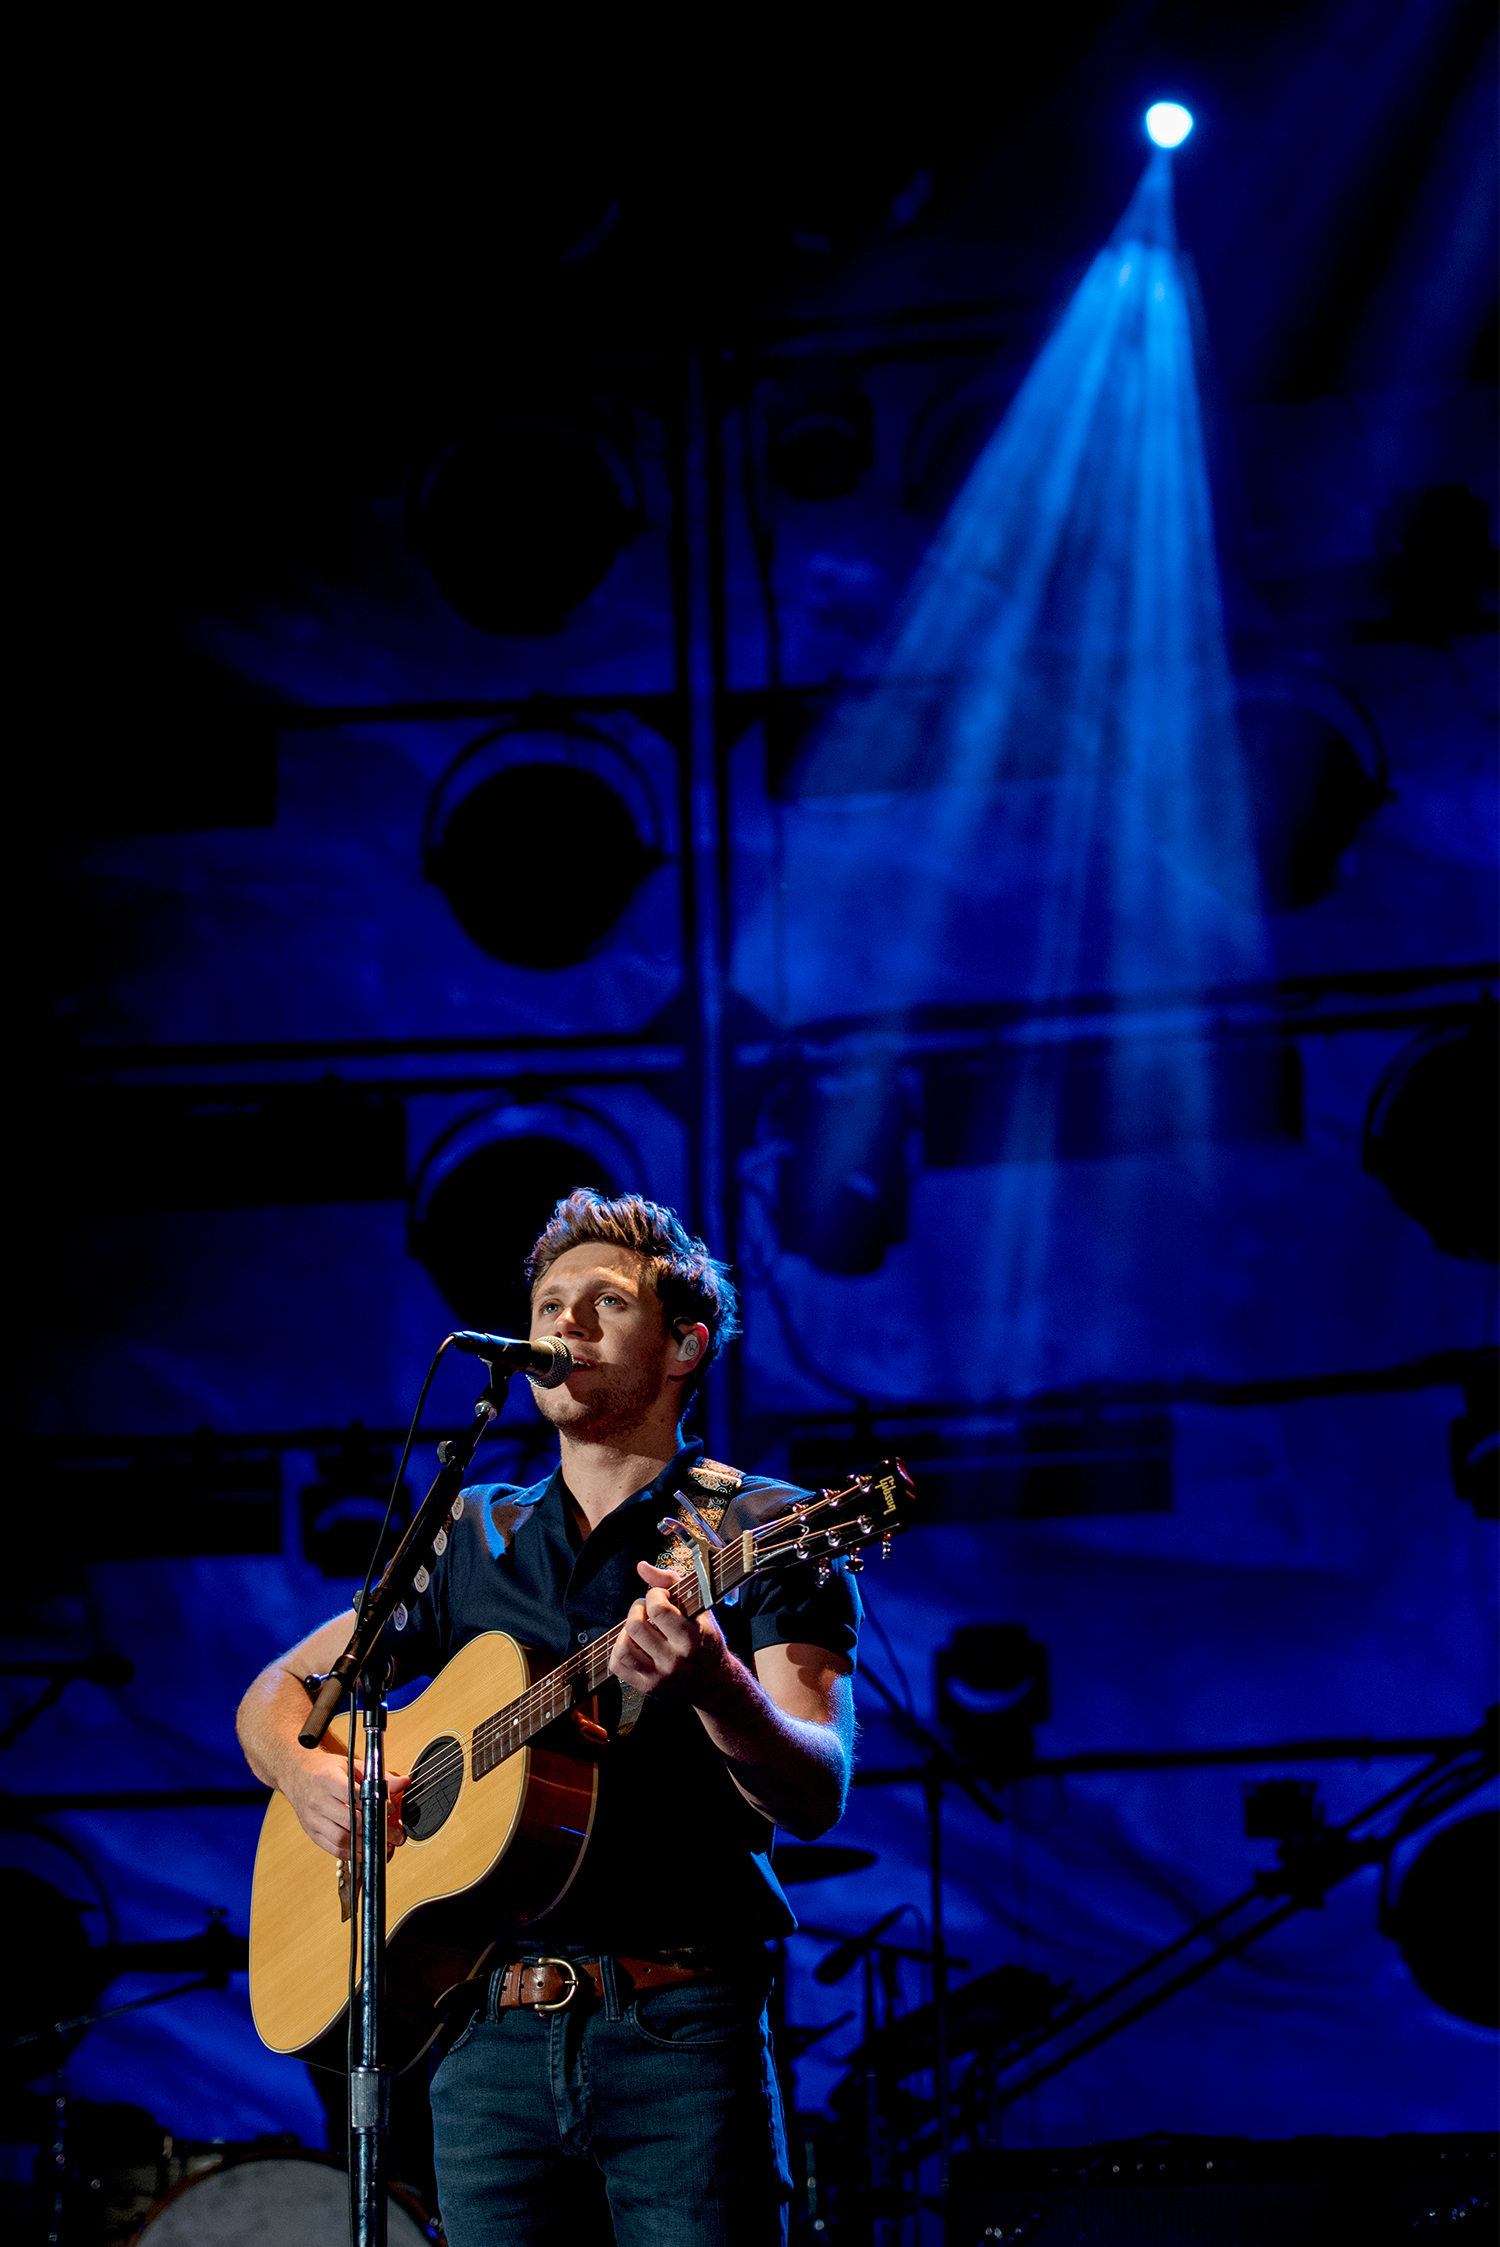 NiallHoranRedRocks8202018 (24 of 32).jpg